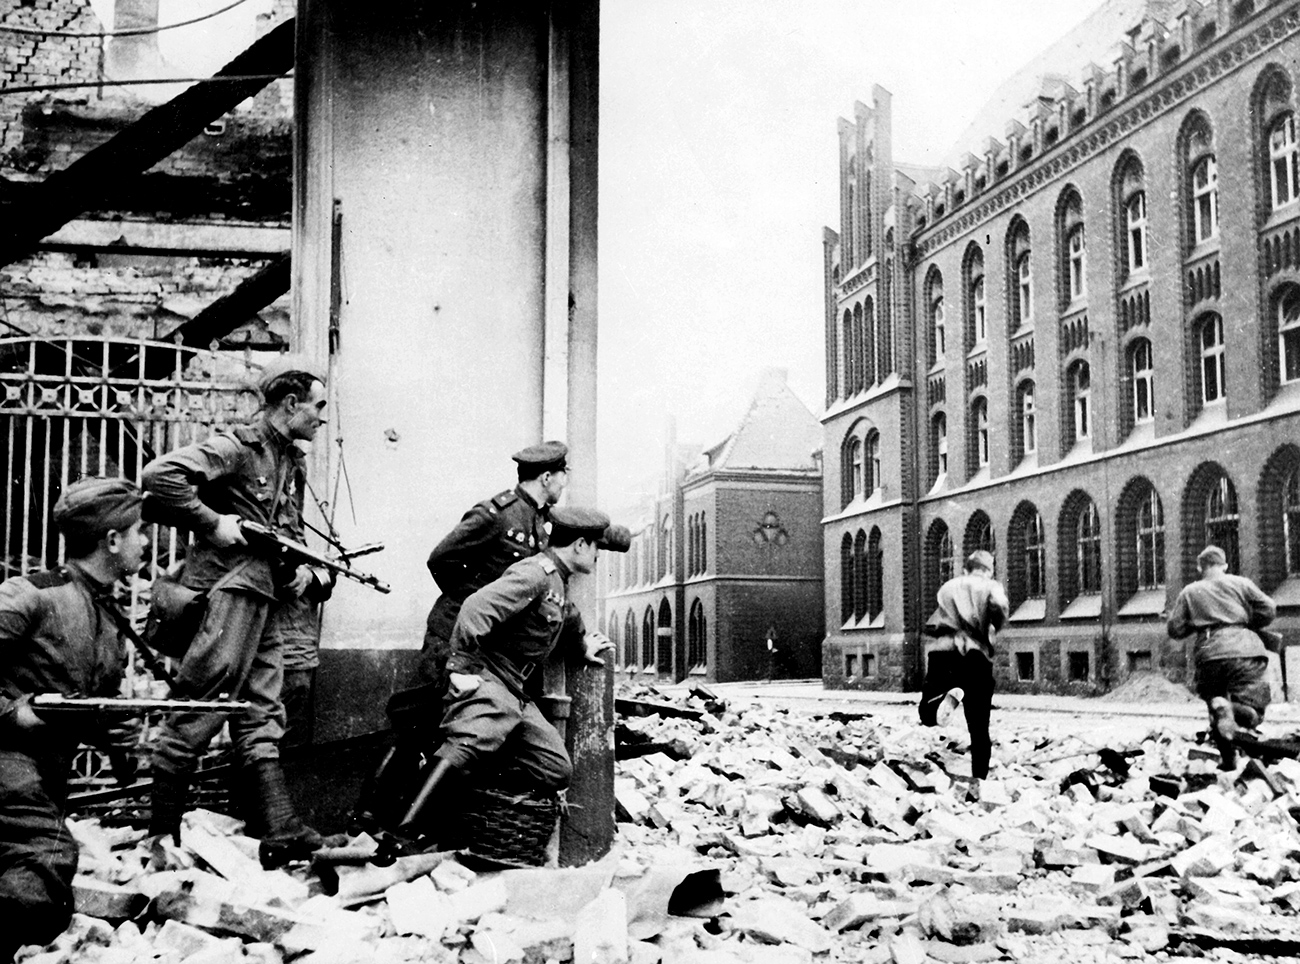 The Red Army in the streets of Berlin, April 1945.